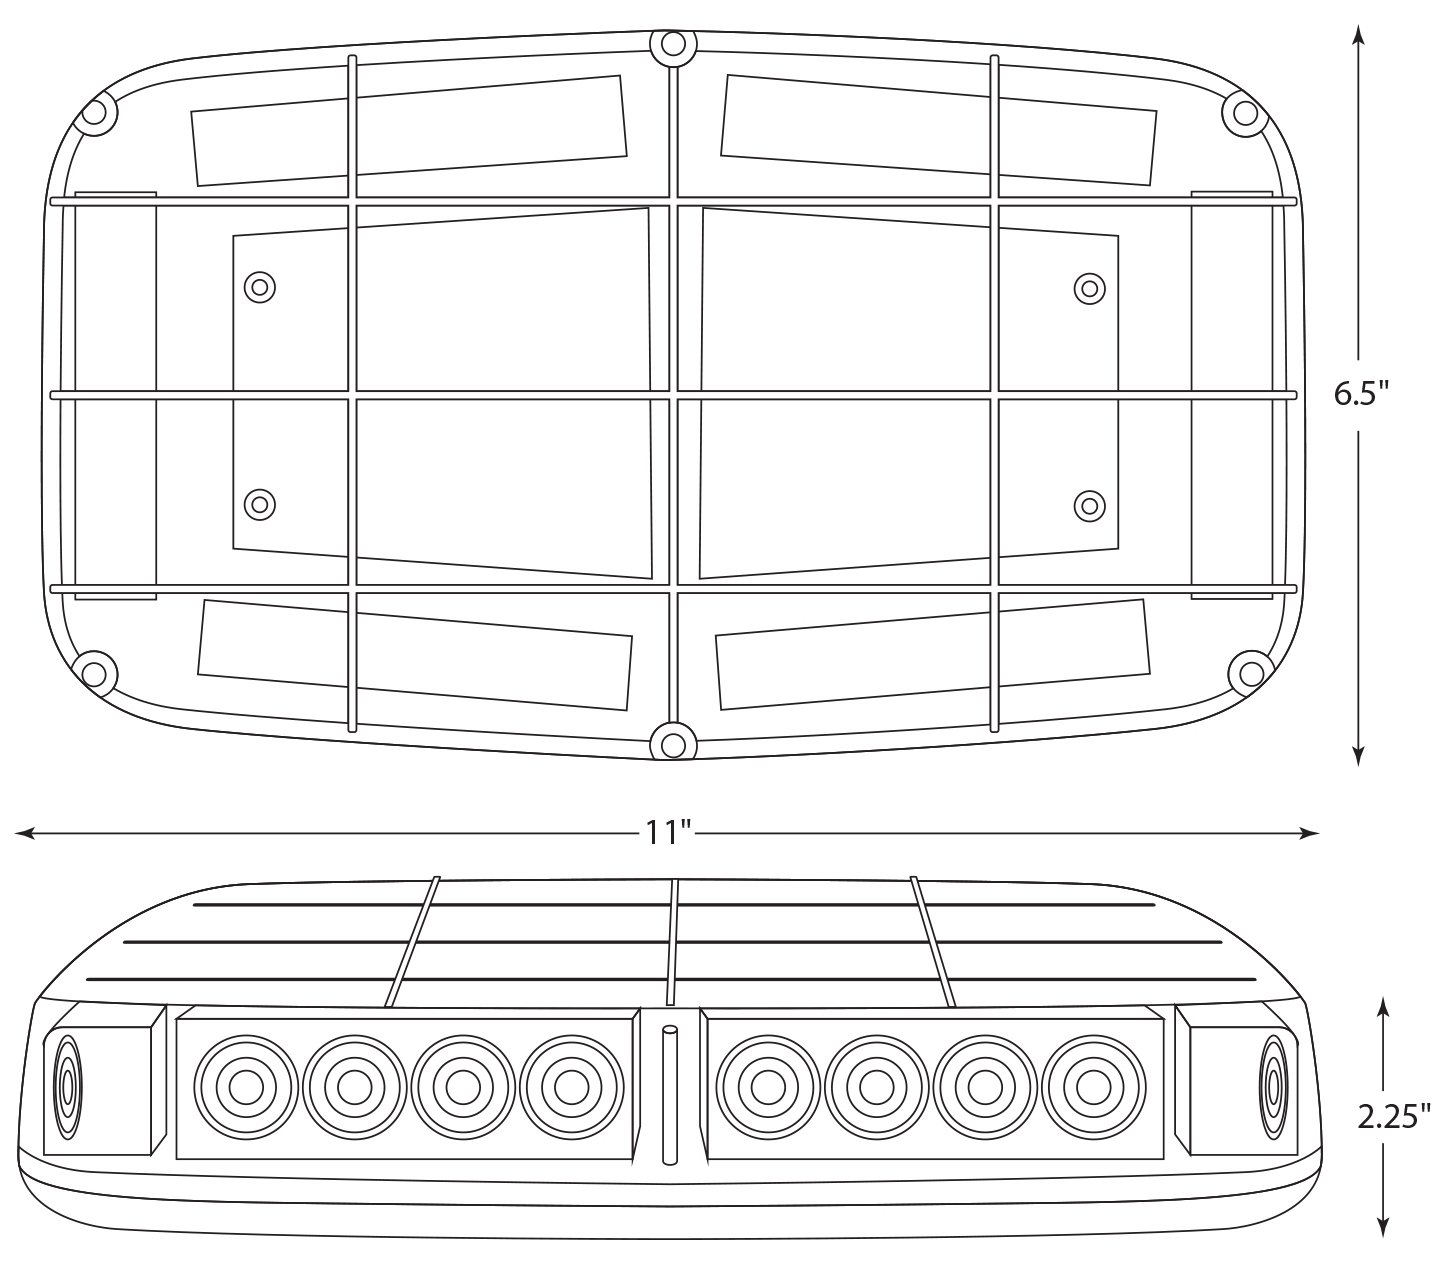 Blazer C4855AW LED Warning Light Bar with Magnetic Base, Amber by Blazer International Trailer & Towing Accessories (Image #6)